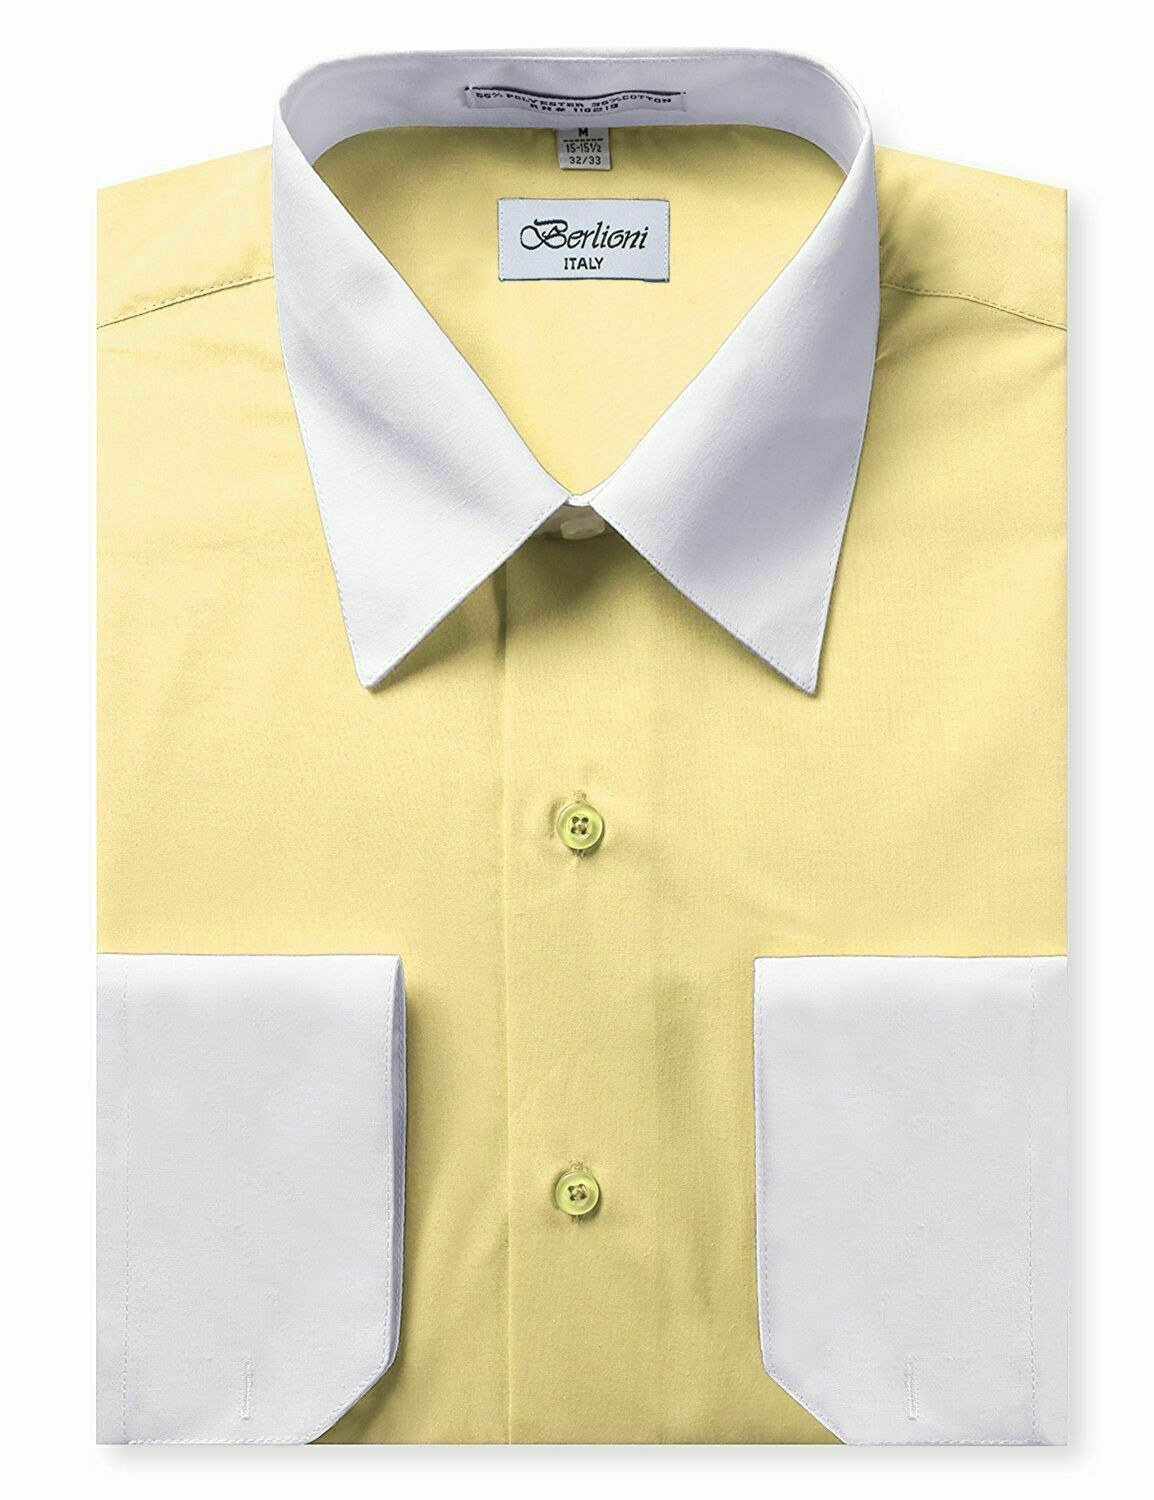 Berlioni Italy Men's Classic White Collar & Cuffs Yellow Dress Shirt w/ Defect